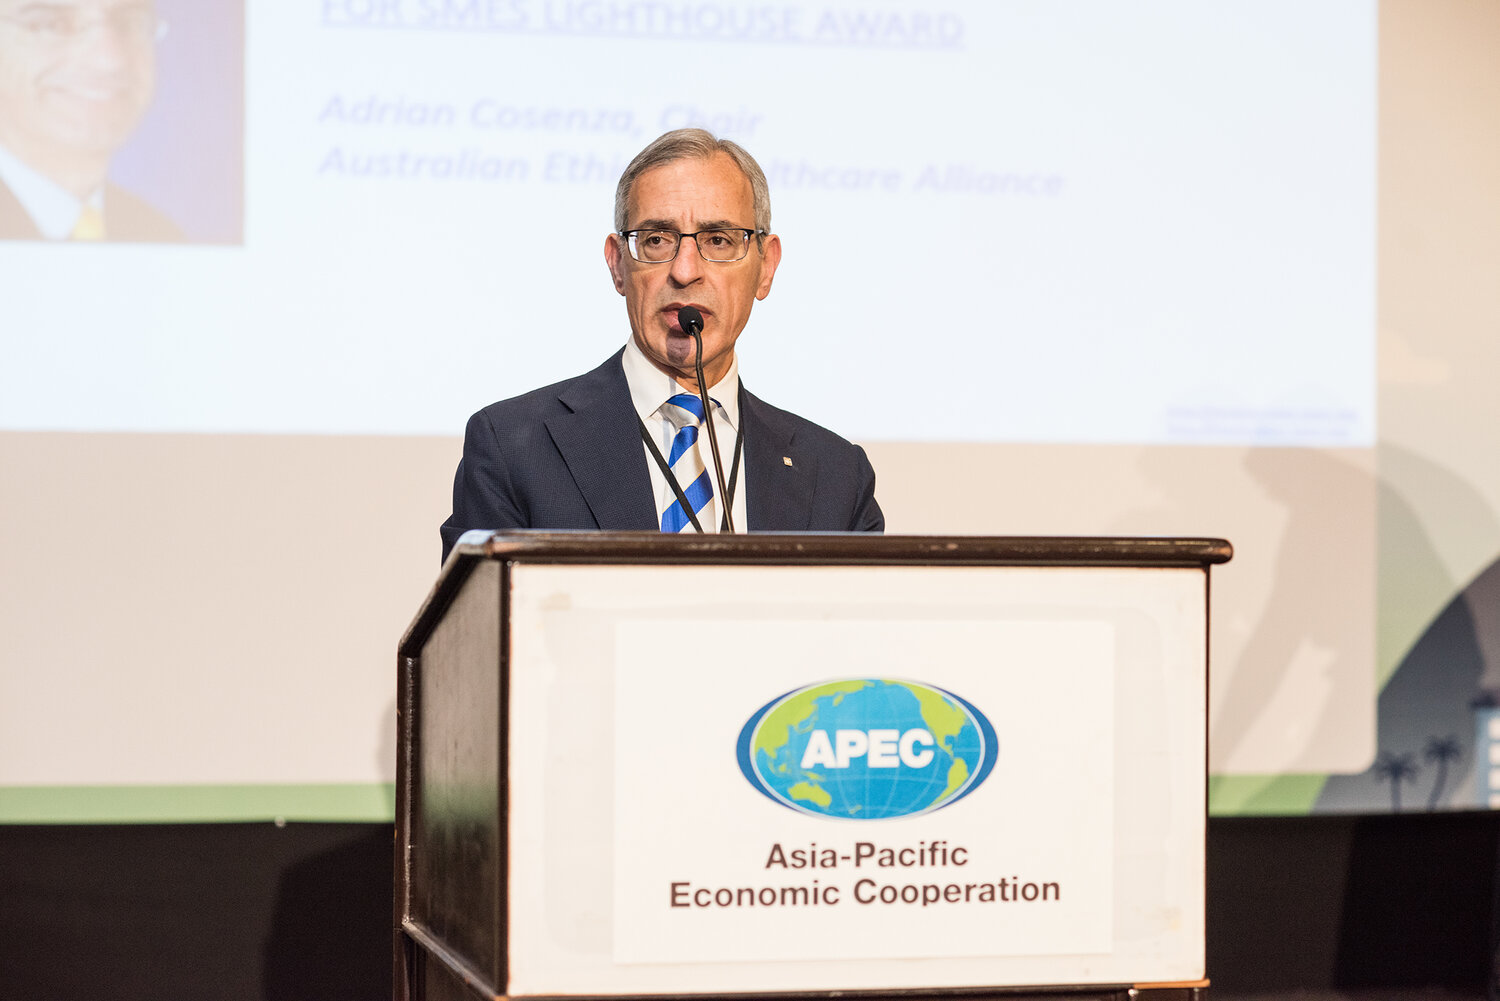 AEHA Chair Adrian Cosenza presenting the Plenary Session at the 2019 APEC Forum